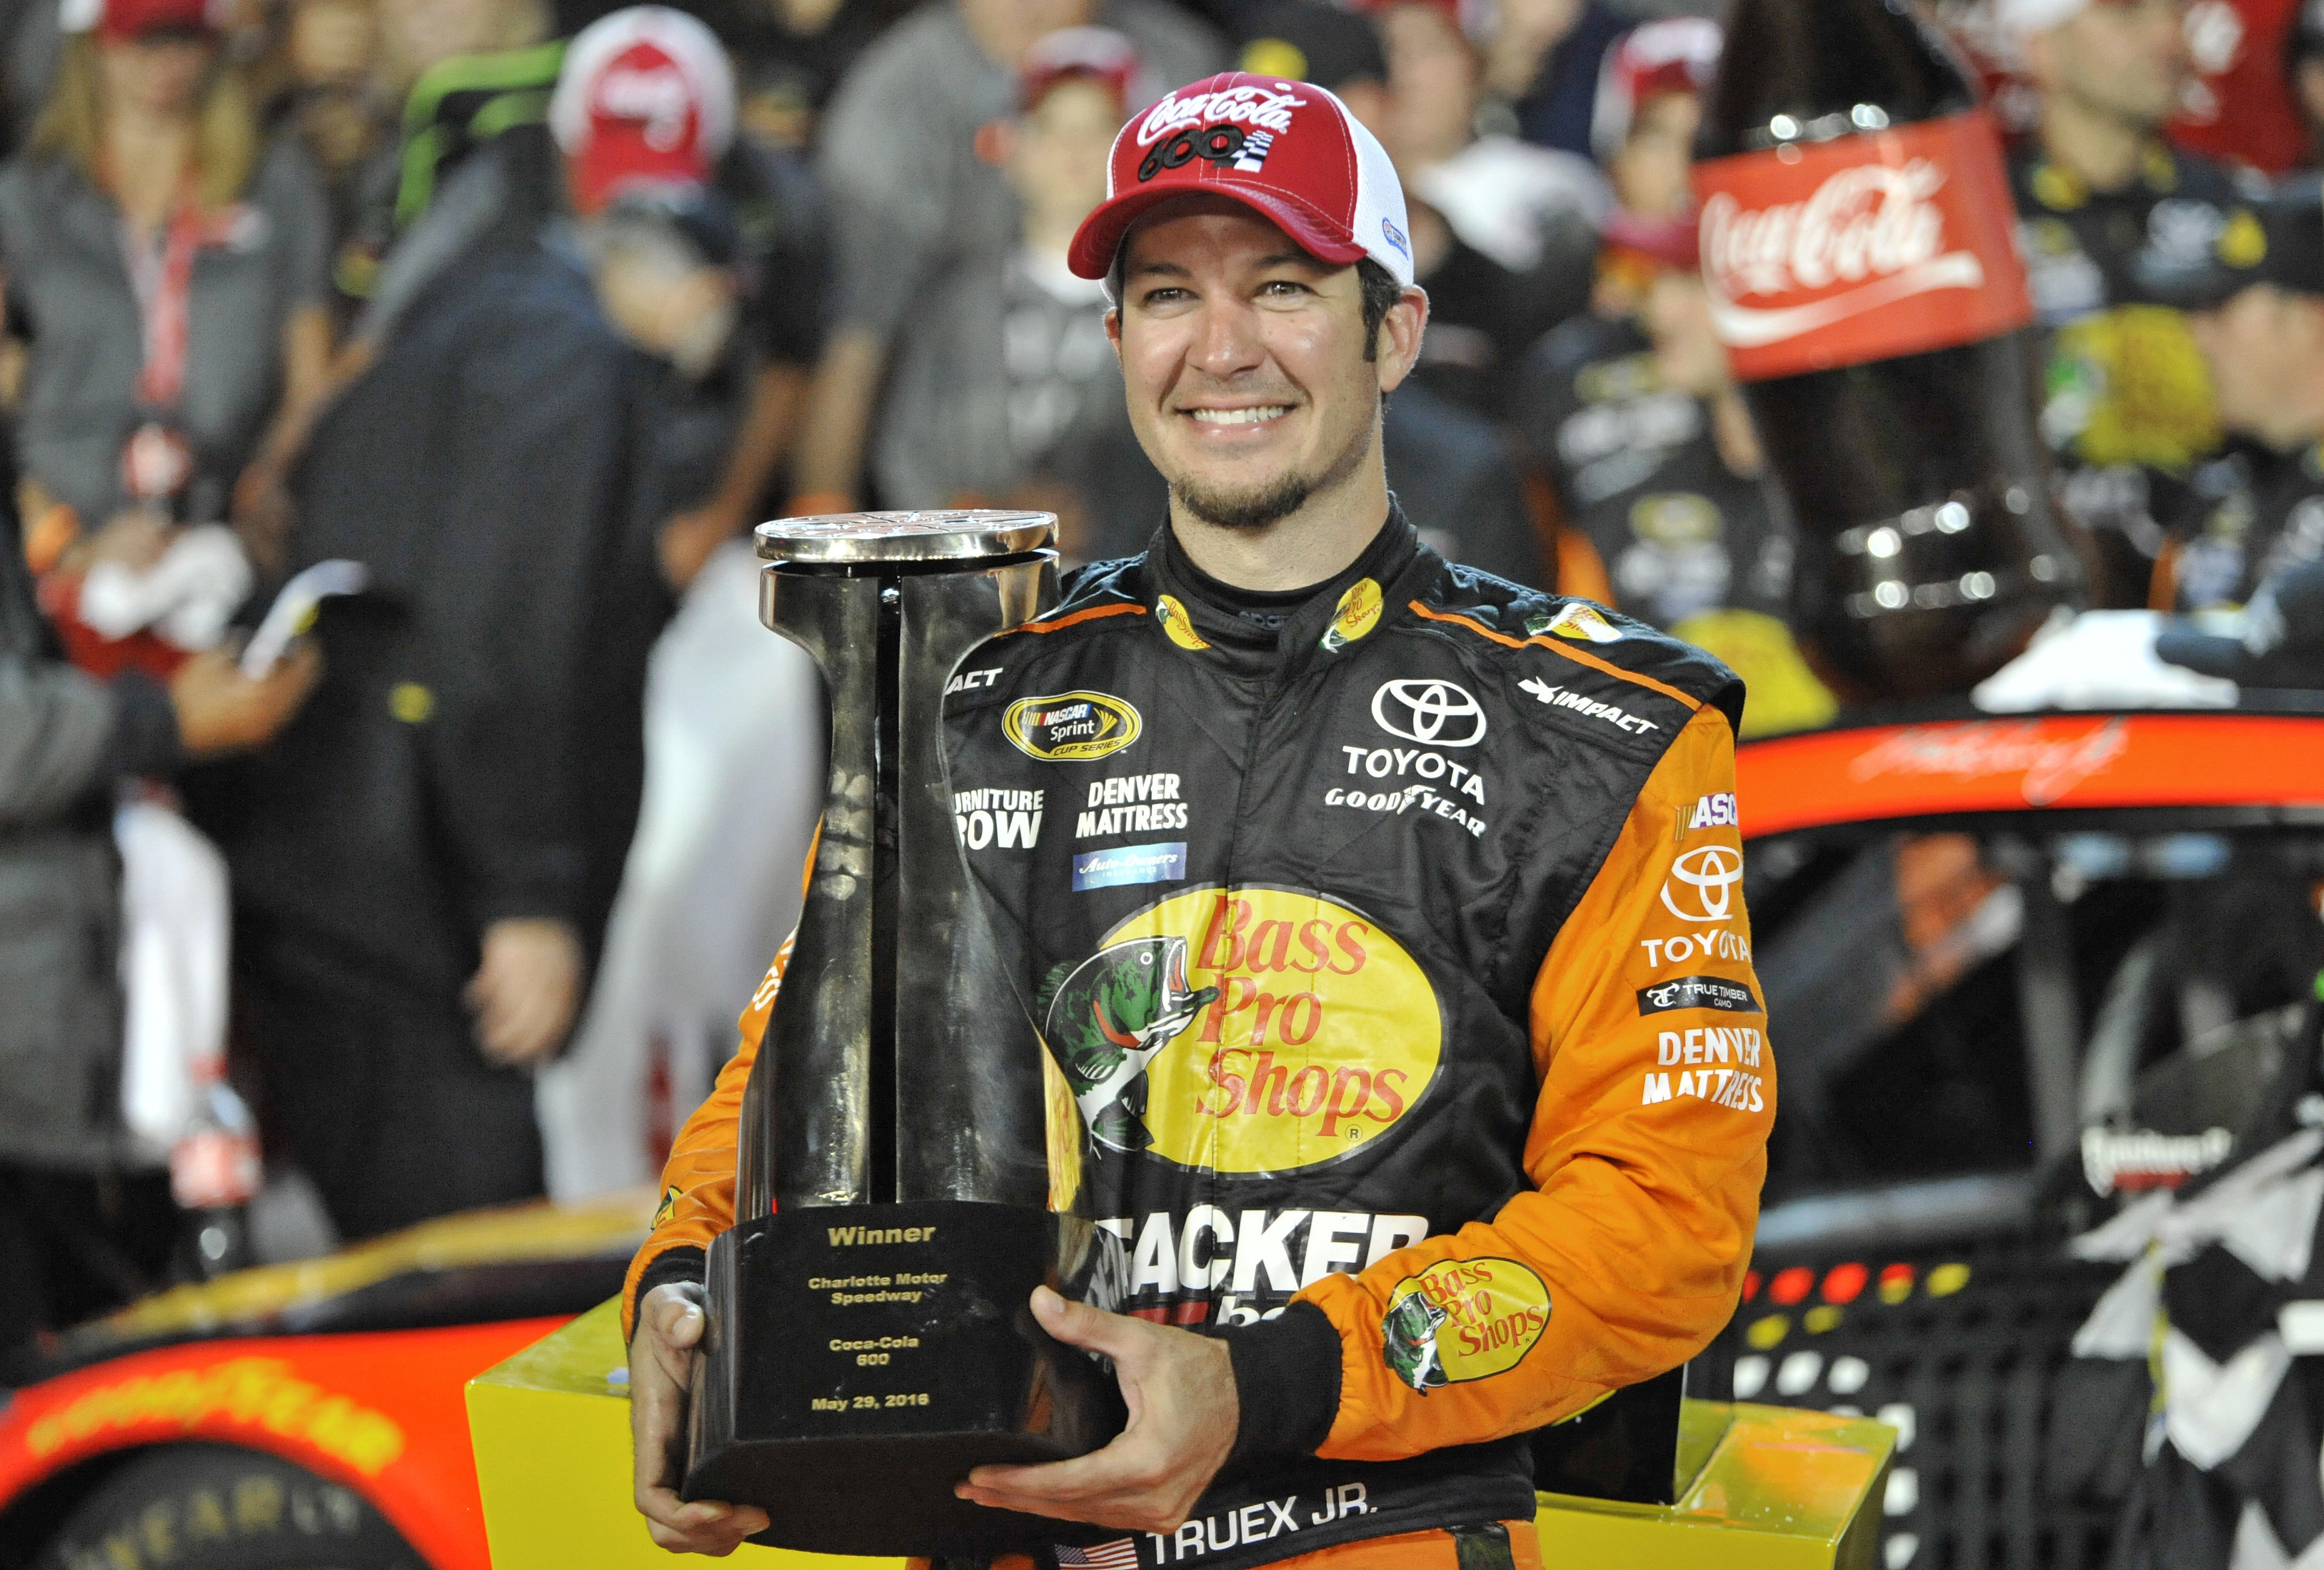 Martin Truex Jr poses with the trophy after winning the NASCAR Sprint Cup series auto race at Charlotte Motor Speedway in Concord, N.C., Sunday, May 29, 2016. (AP Photo/Matthew Bishop)